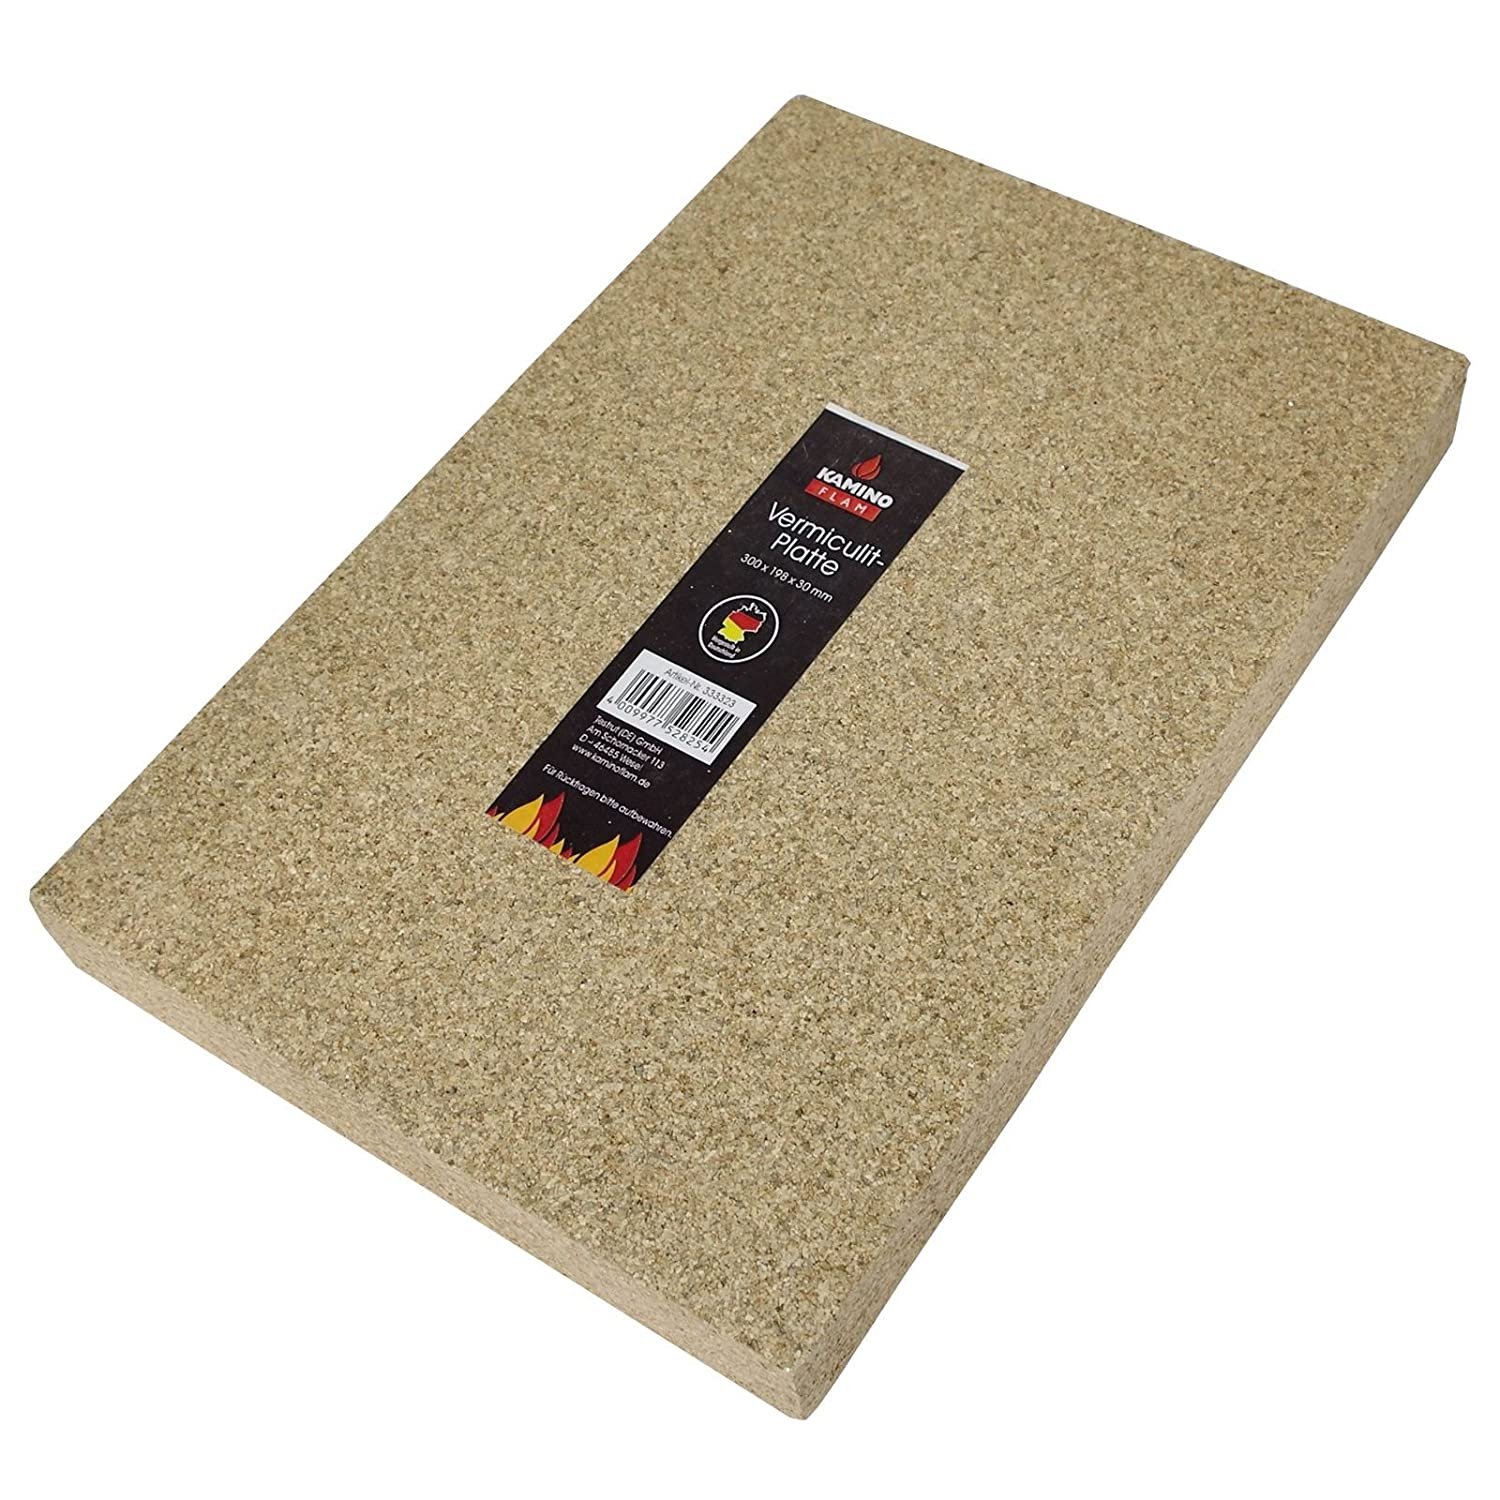 Kamino-Flam Vermiculite Fire Board, Incombustible Stove Plate made of Natural Clay, Chamotte Substitute, No Harmful Substances and Heavy Metals, Temperature-resistant up to 1,100°C, approx. 30x20x3cm Kamino - Flam 333323